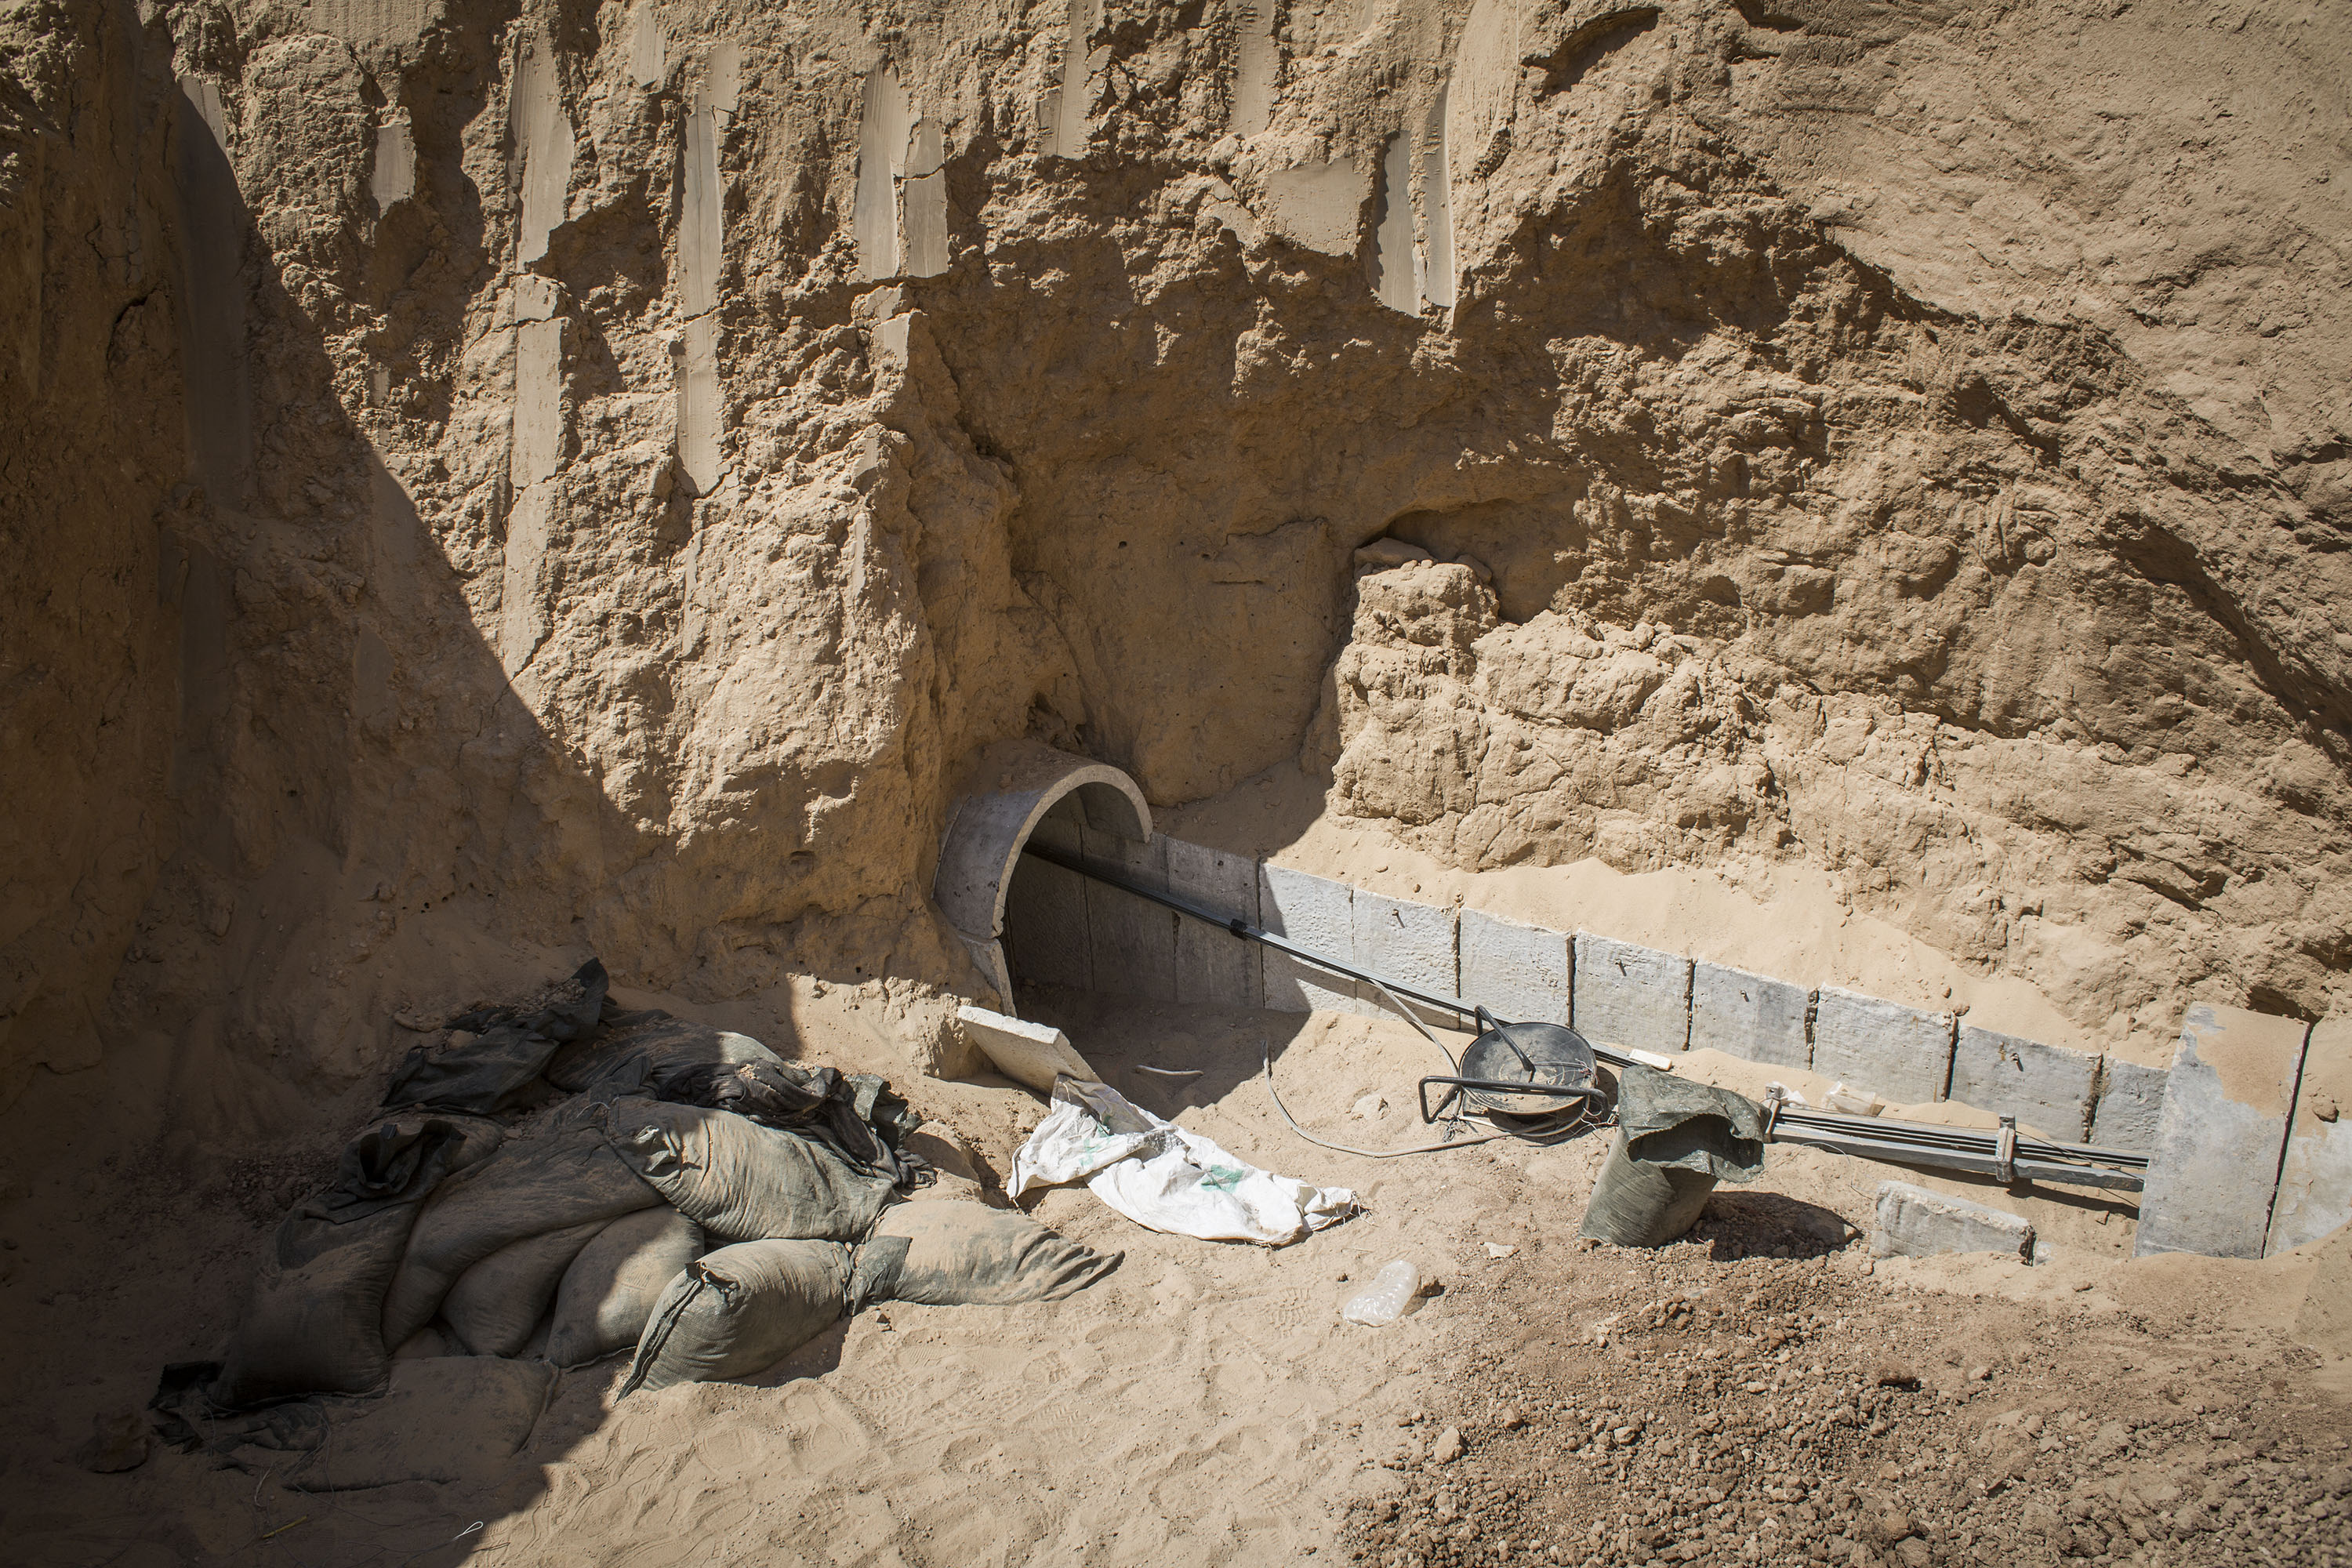 Overview of a tunnel built underground by Hamas militants leading from the Gaza Strip into Southern Israel, seen on August 4, 2014 near the Israeli Gaza border, Israel.